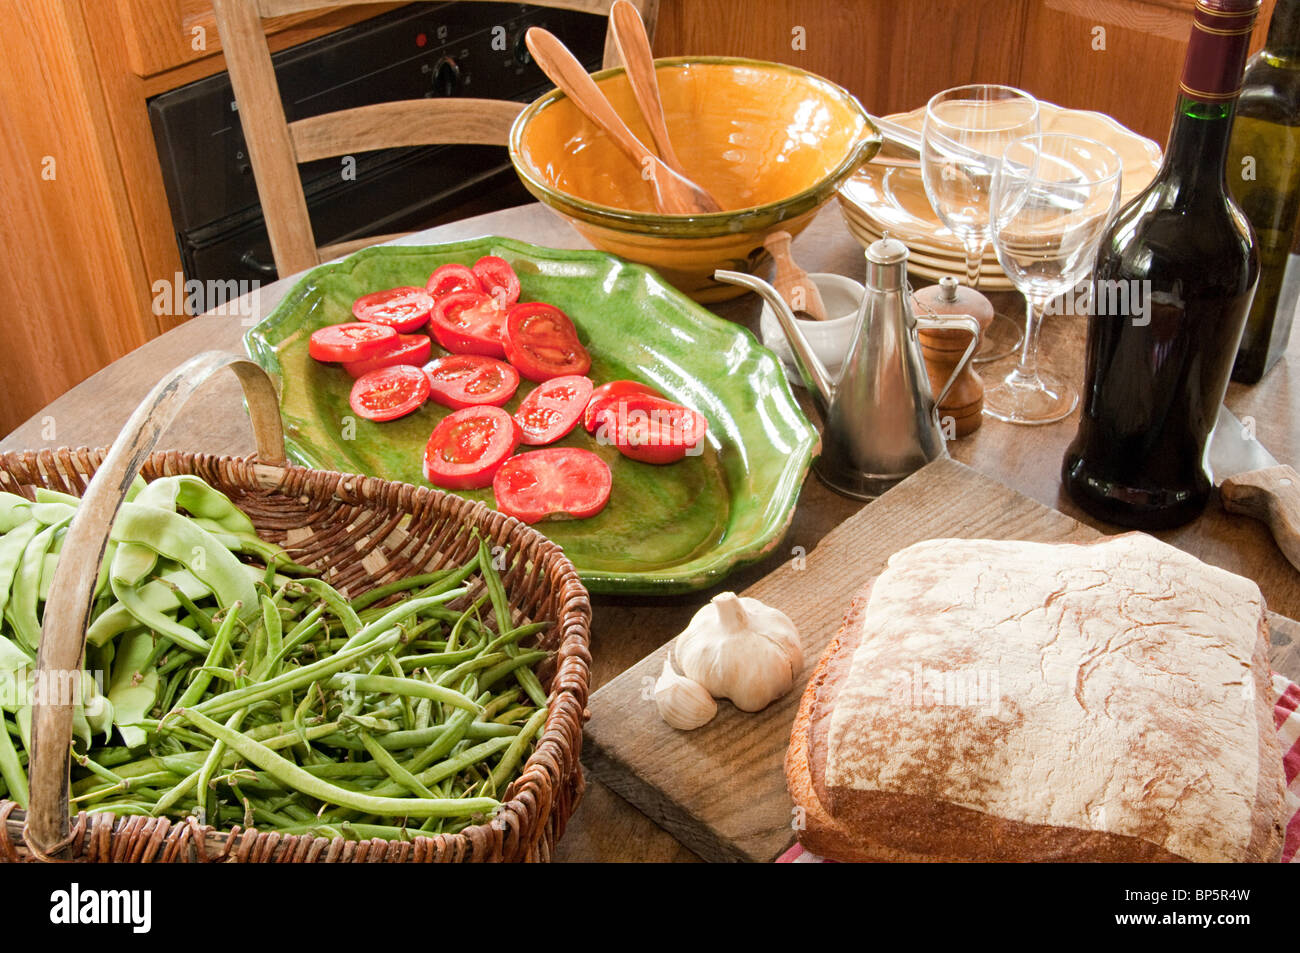 Food On Table In French Country Kitchen